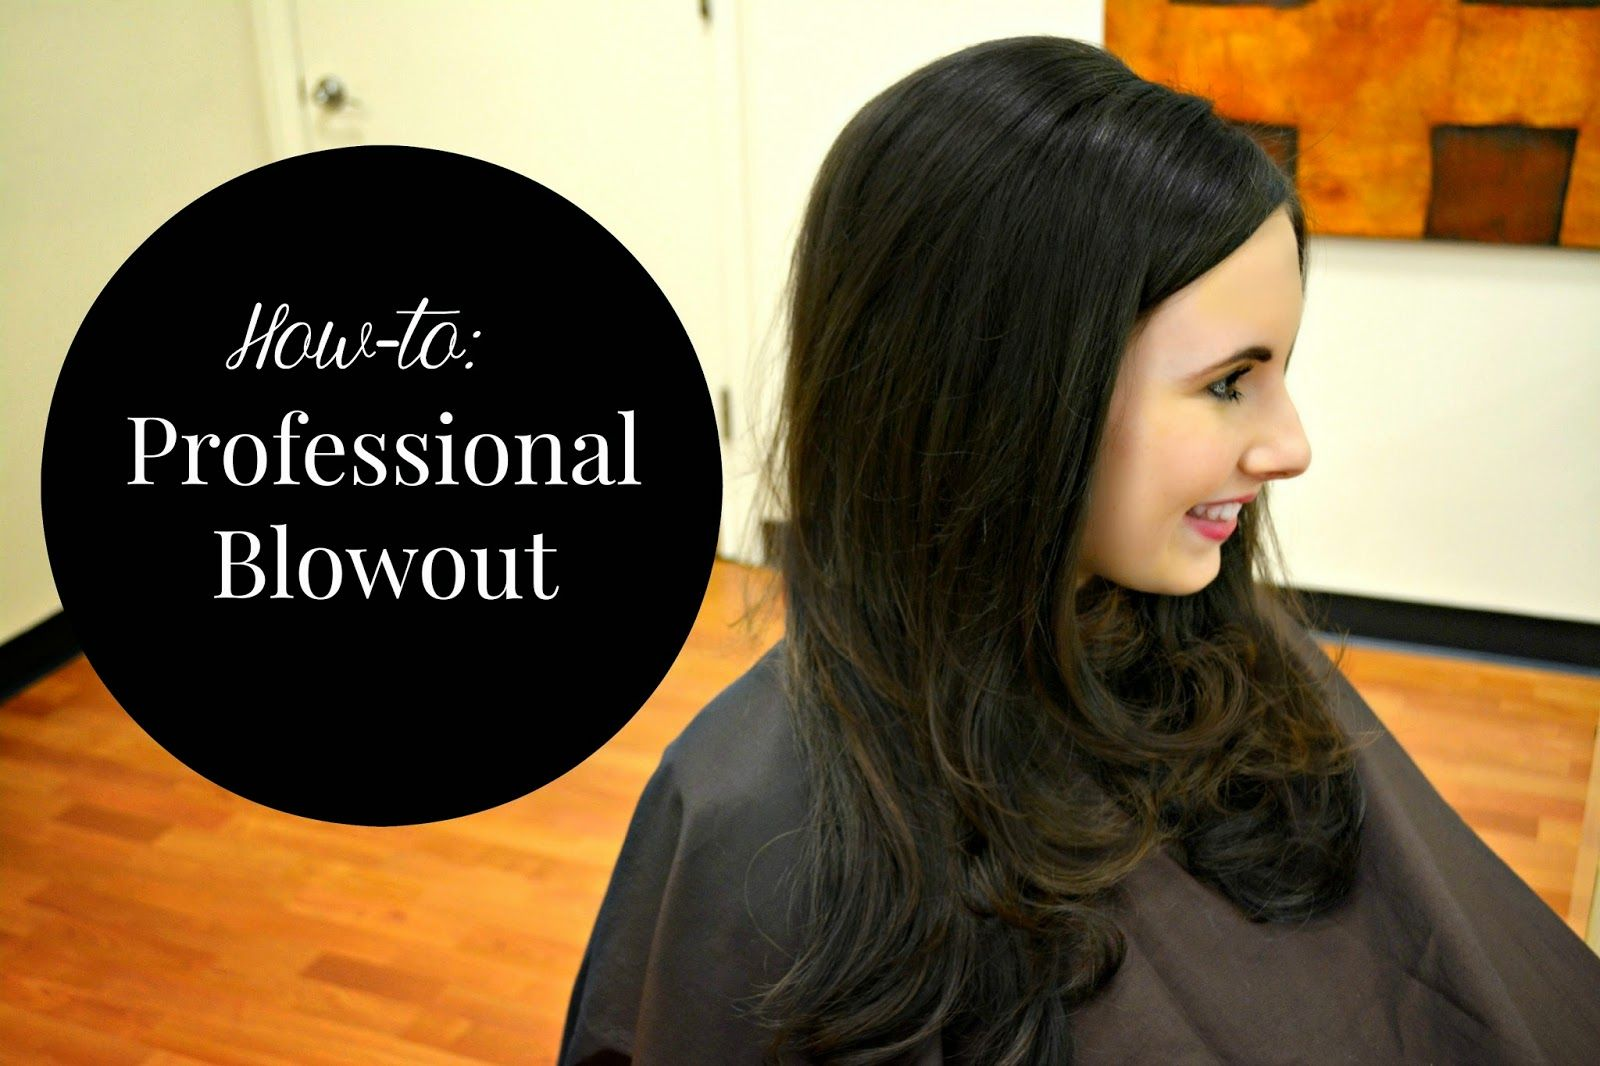 How-to: Professional Blowout